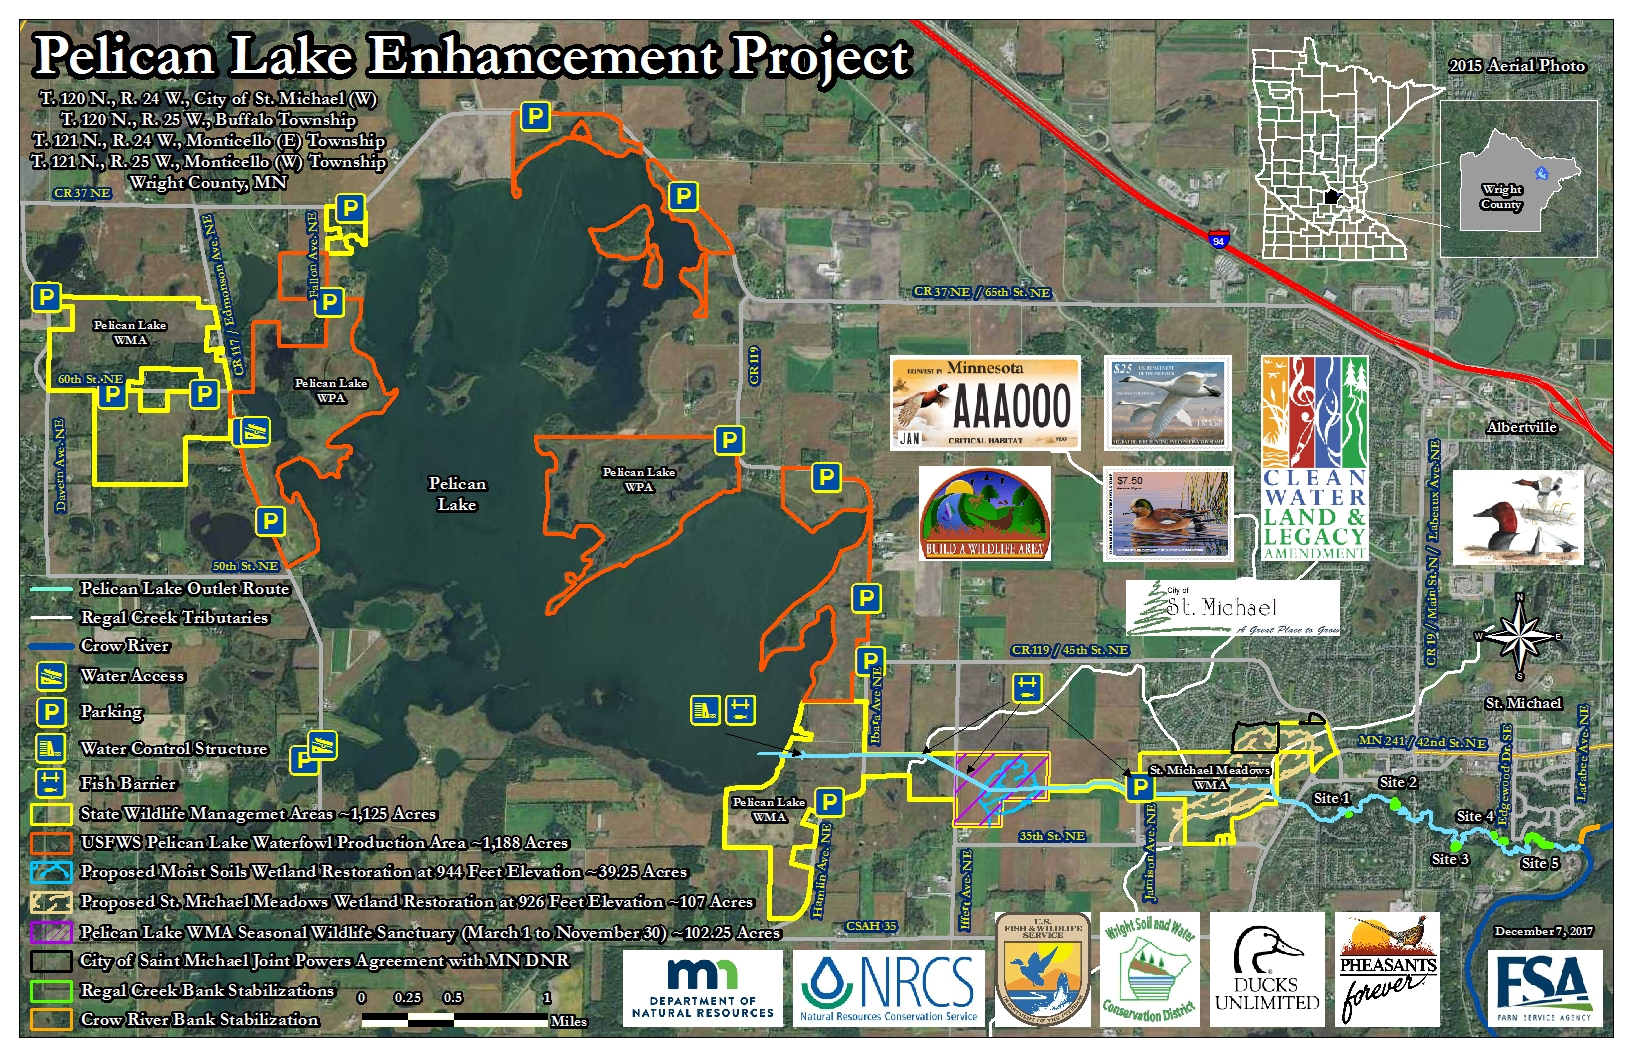 Pelican Lake Enhancement Project